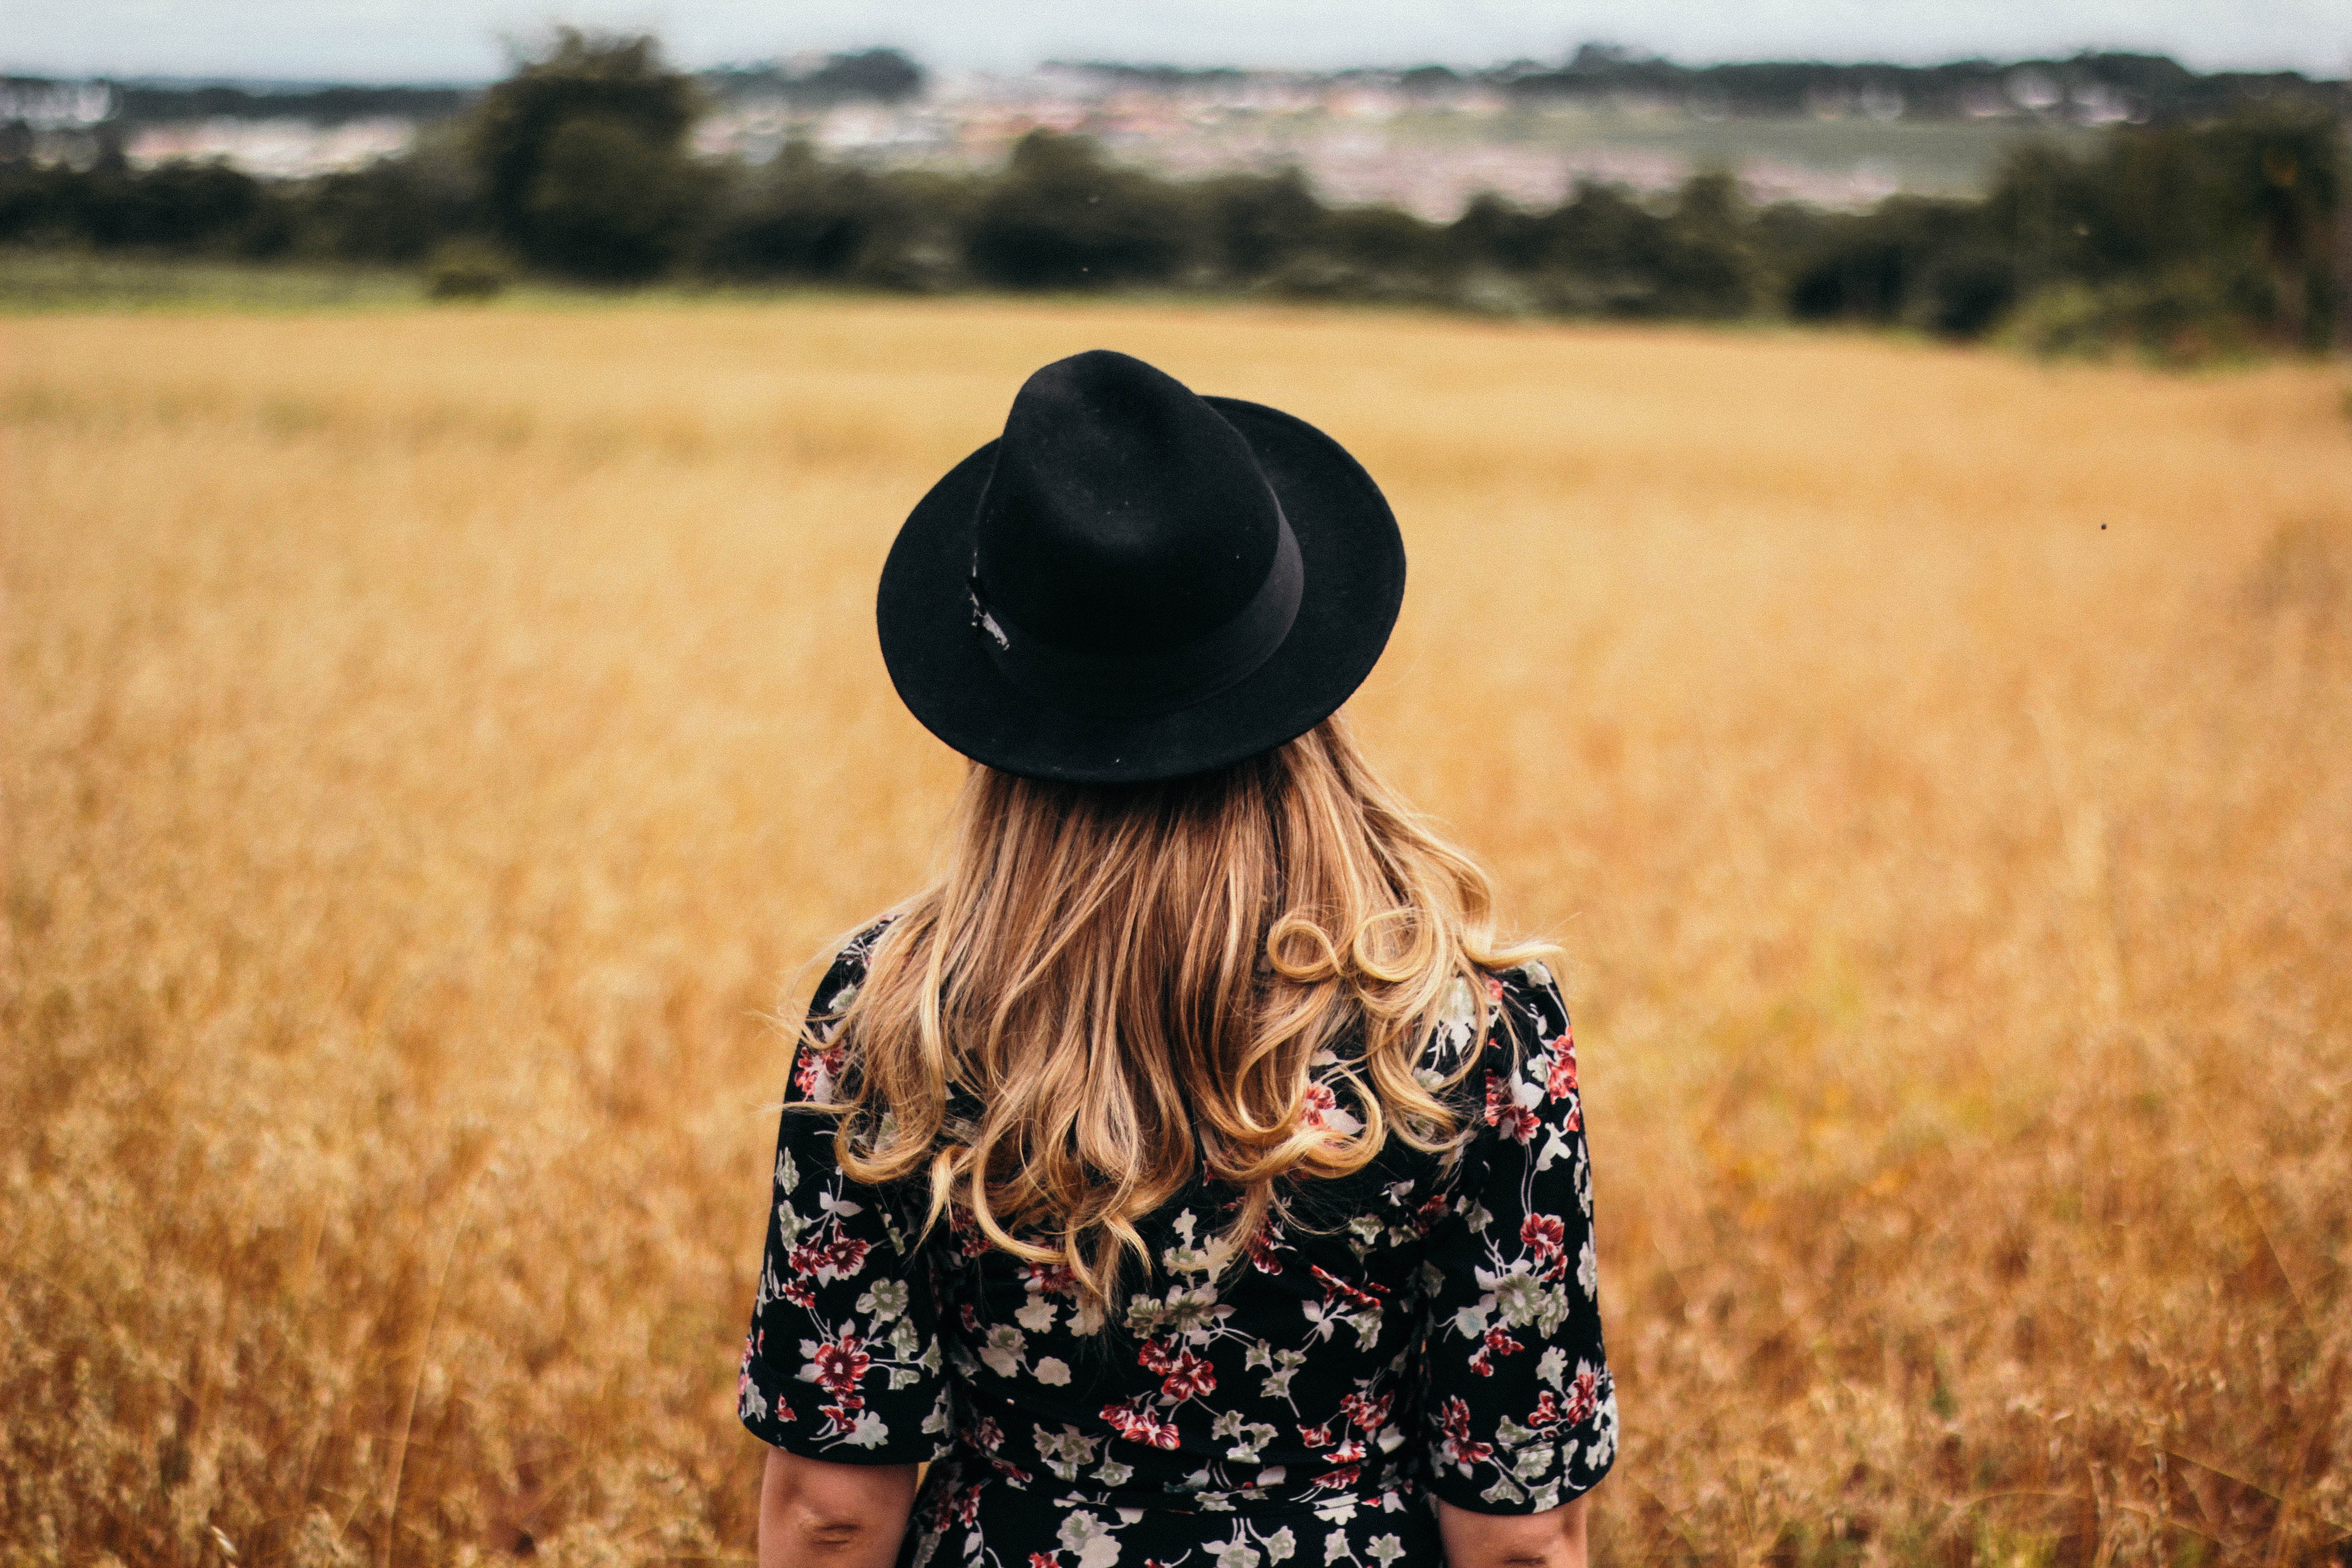 Behind a woman standing alone in a wheat field waring a hat and dress